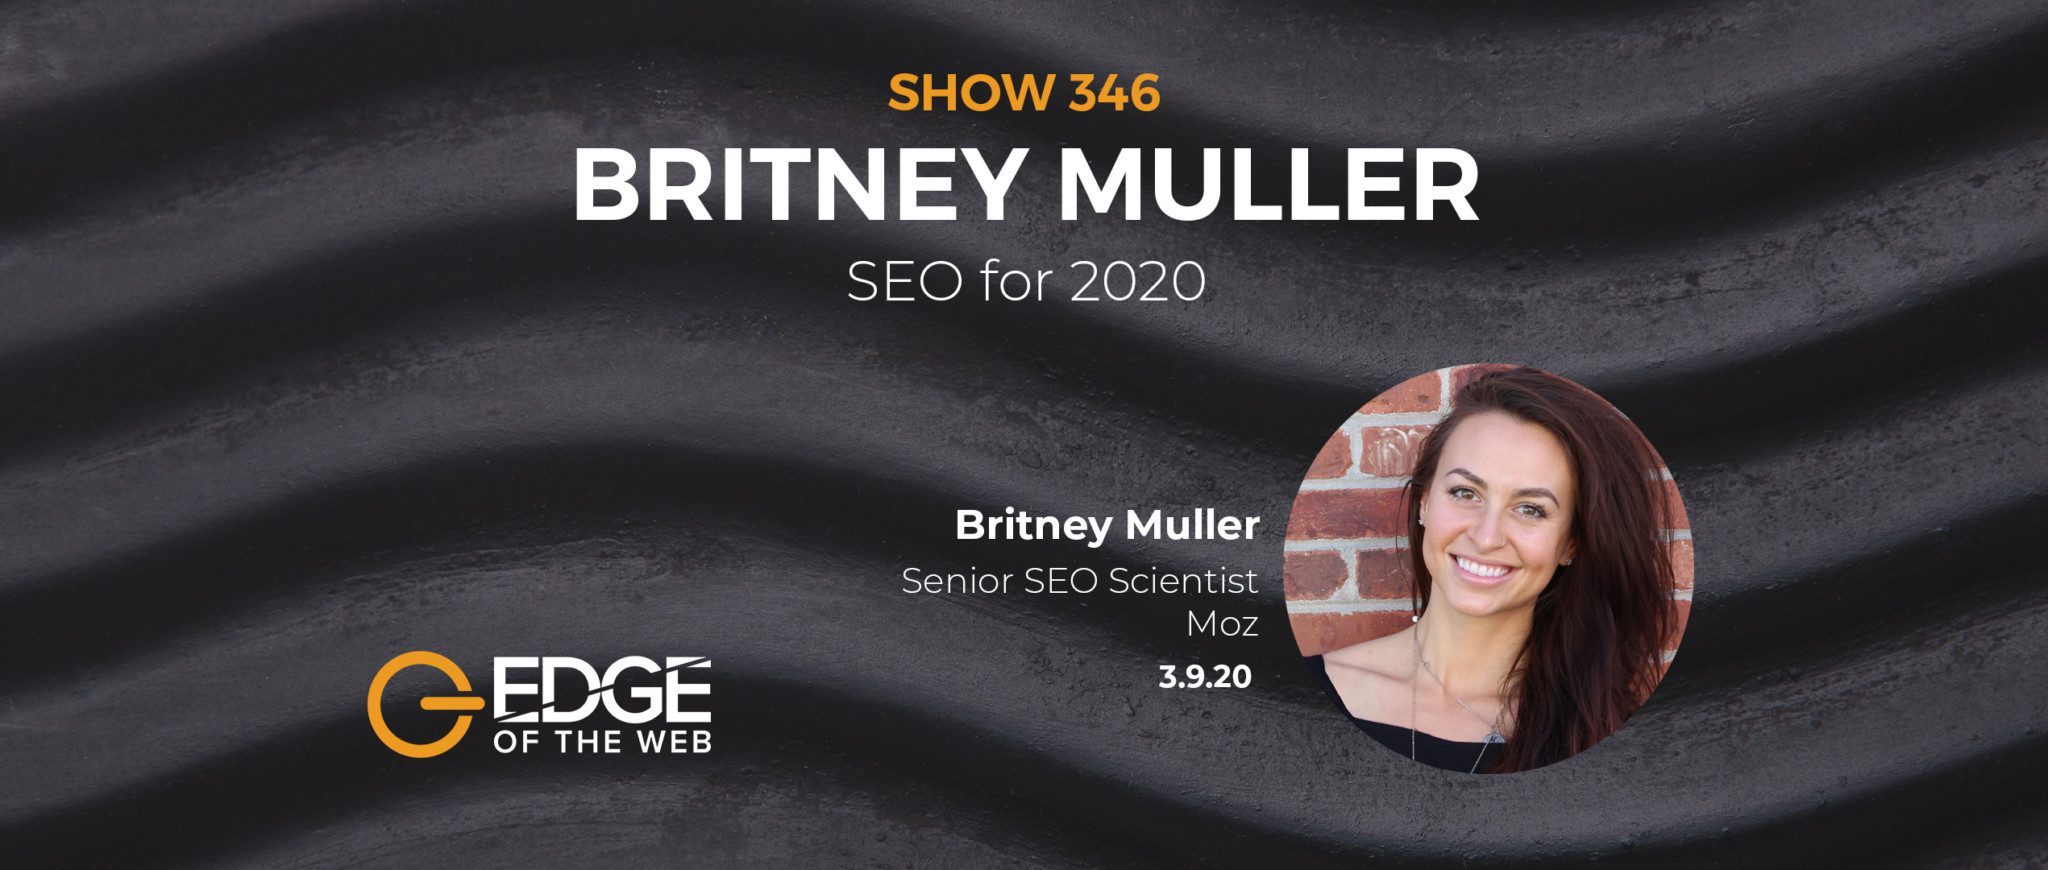 Show 346: SEO for 2020, featuring Britney Muller